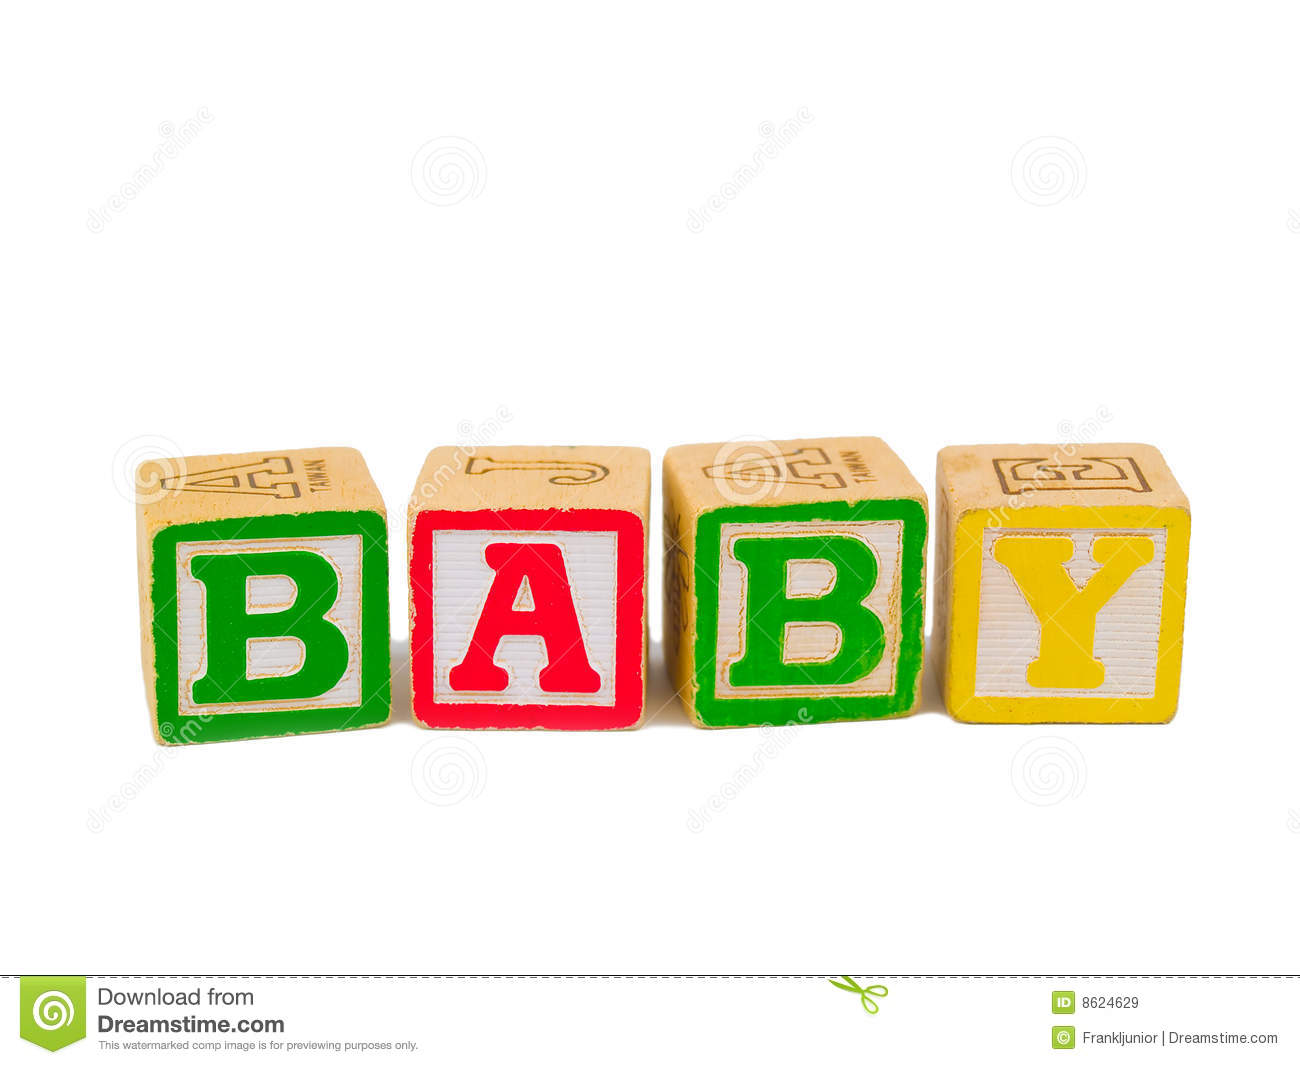 ABC Blocks Spelling BABY Royalty Free Stock Images - Image: 8624629